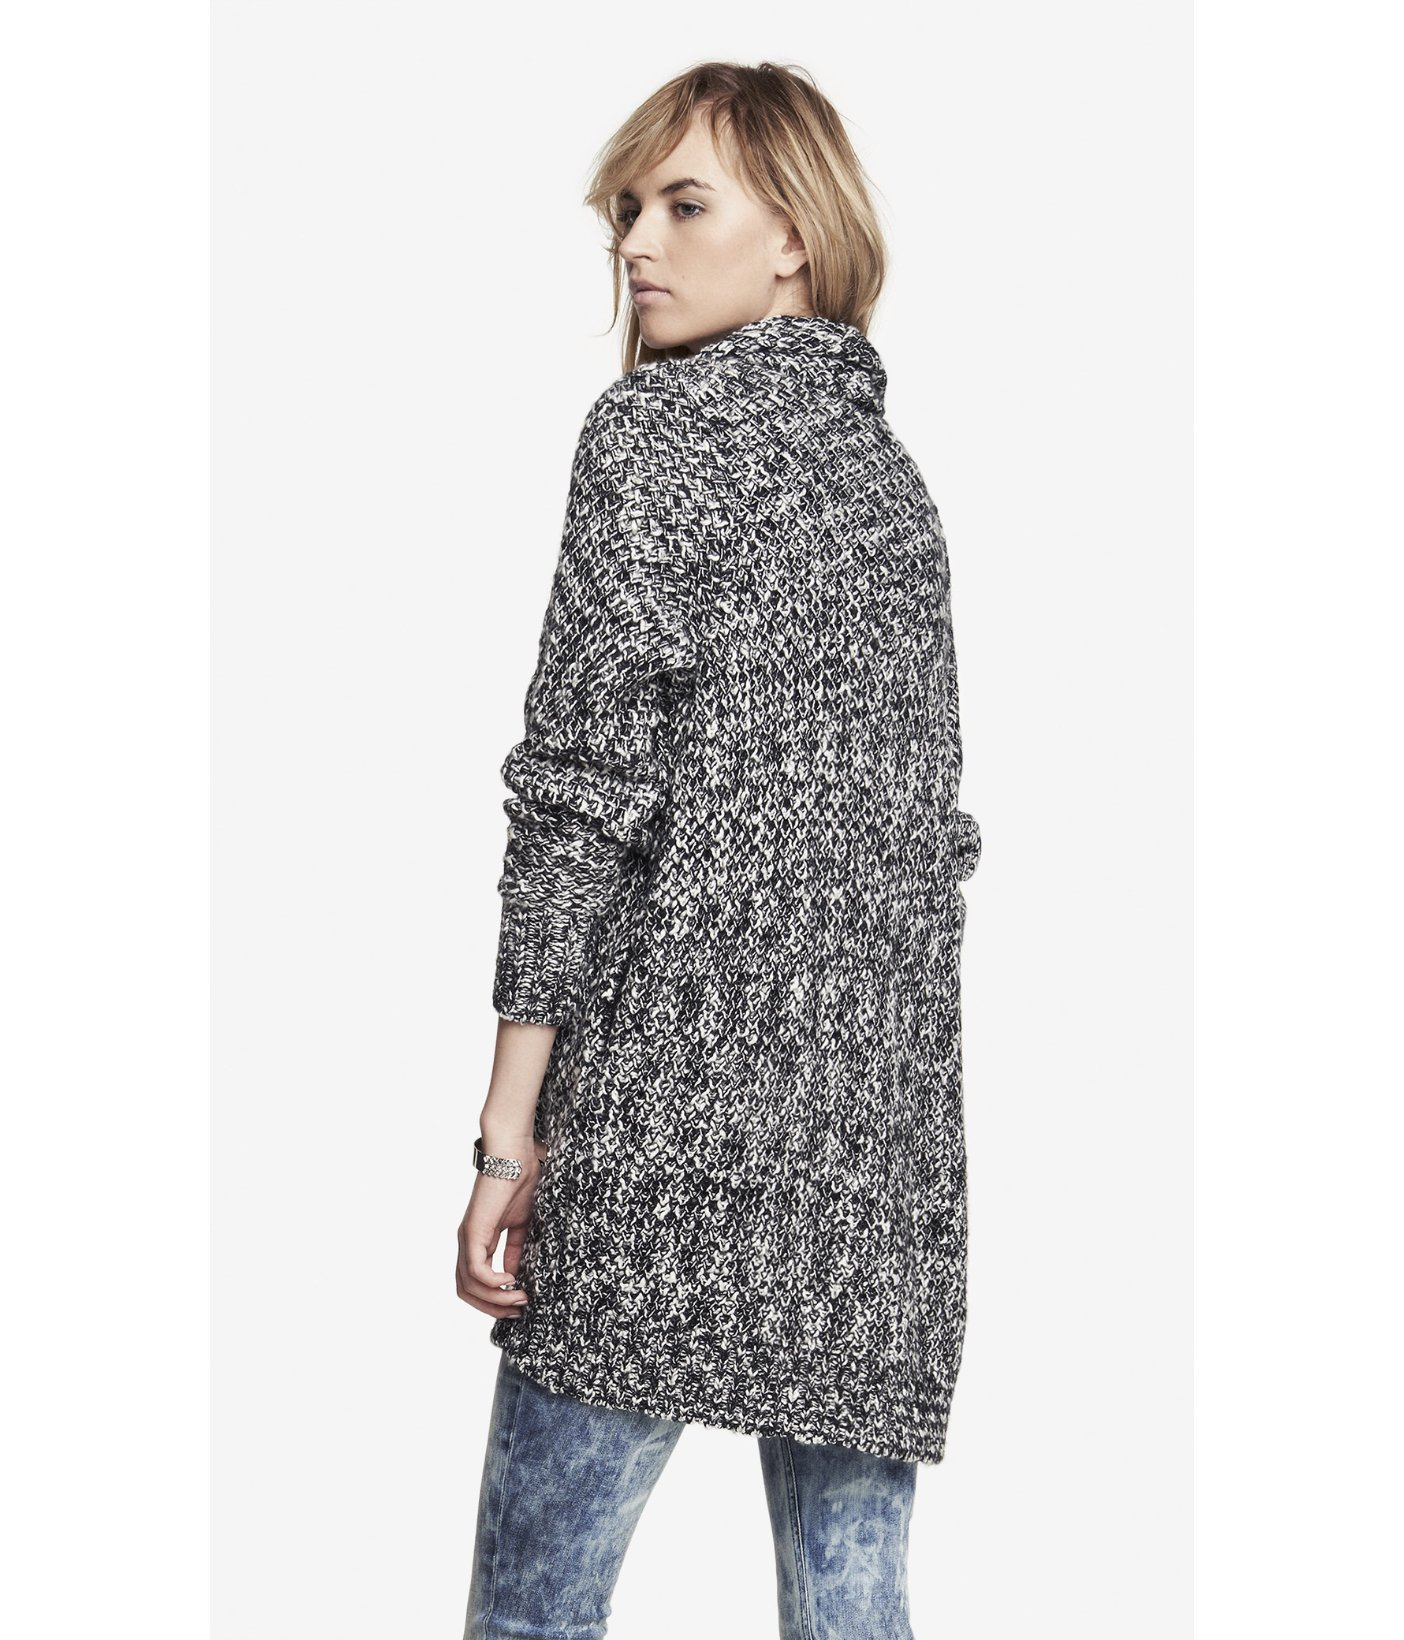 Express Wool Blend Marled Textured Sweater Coat in Black | Lyst